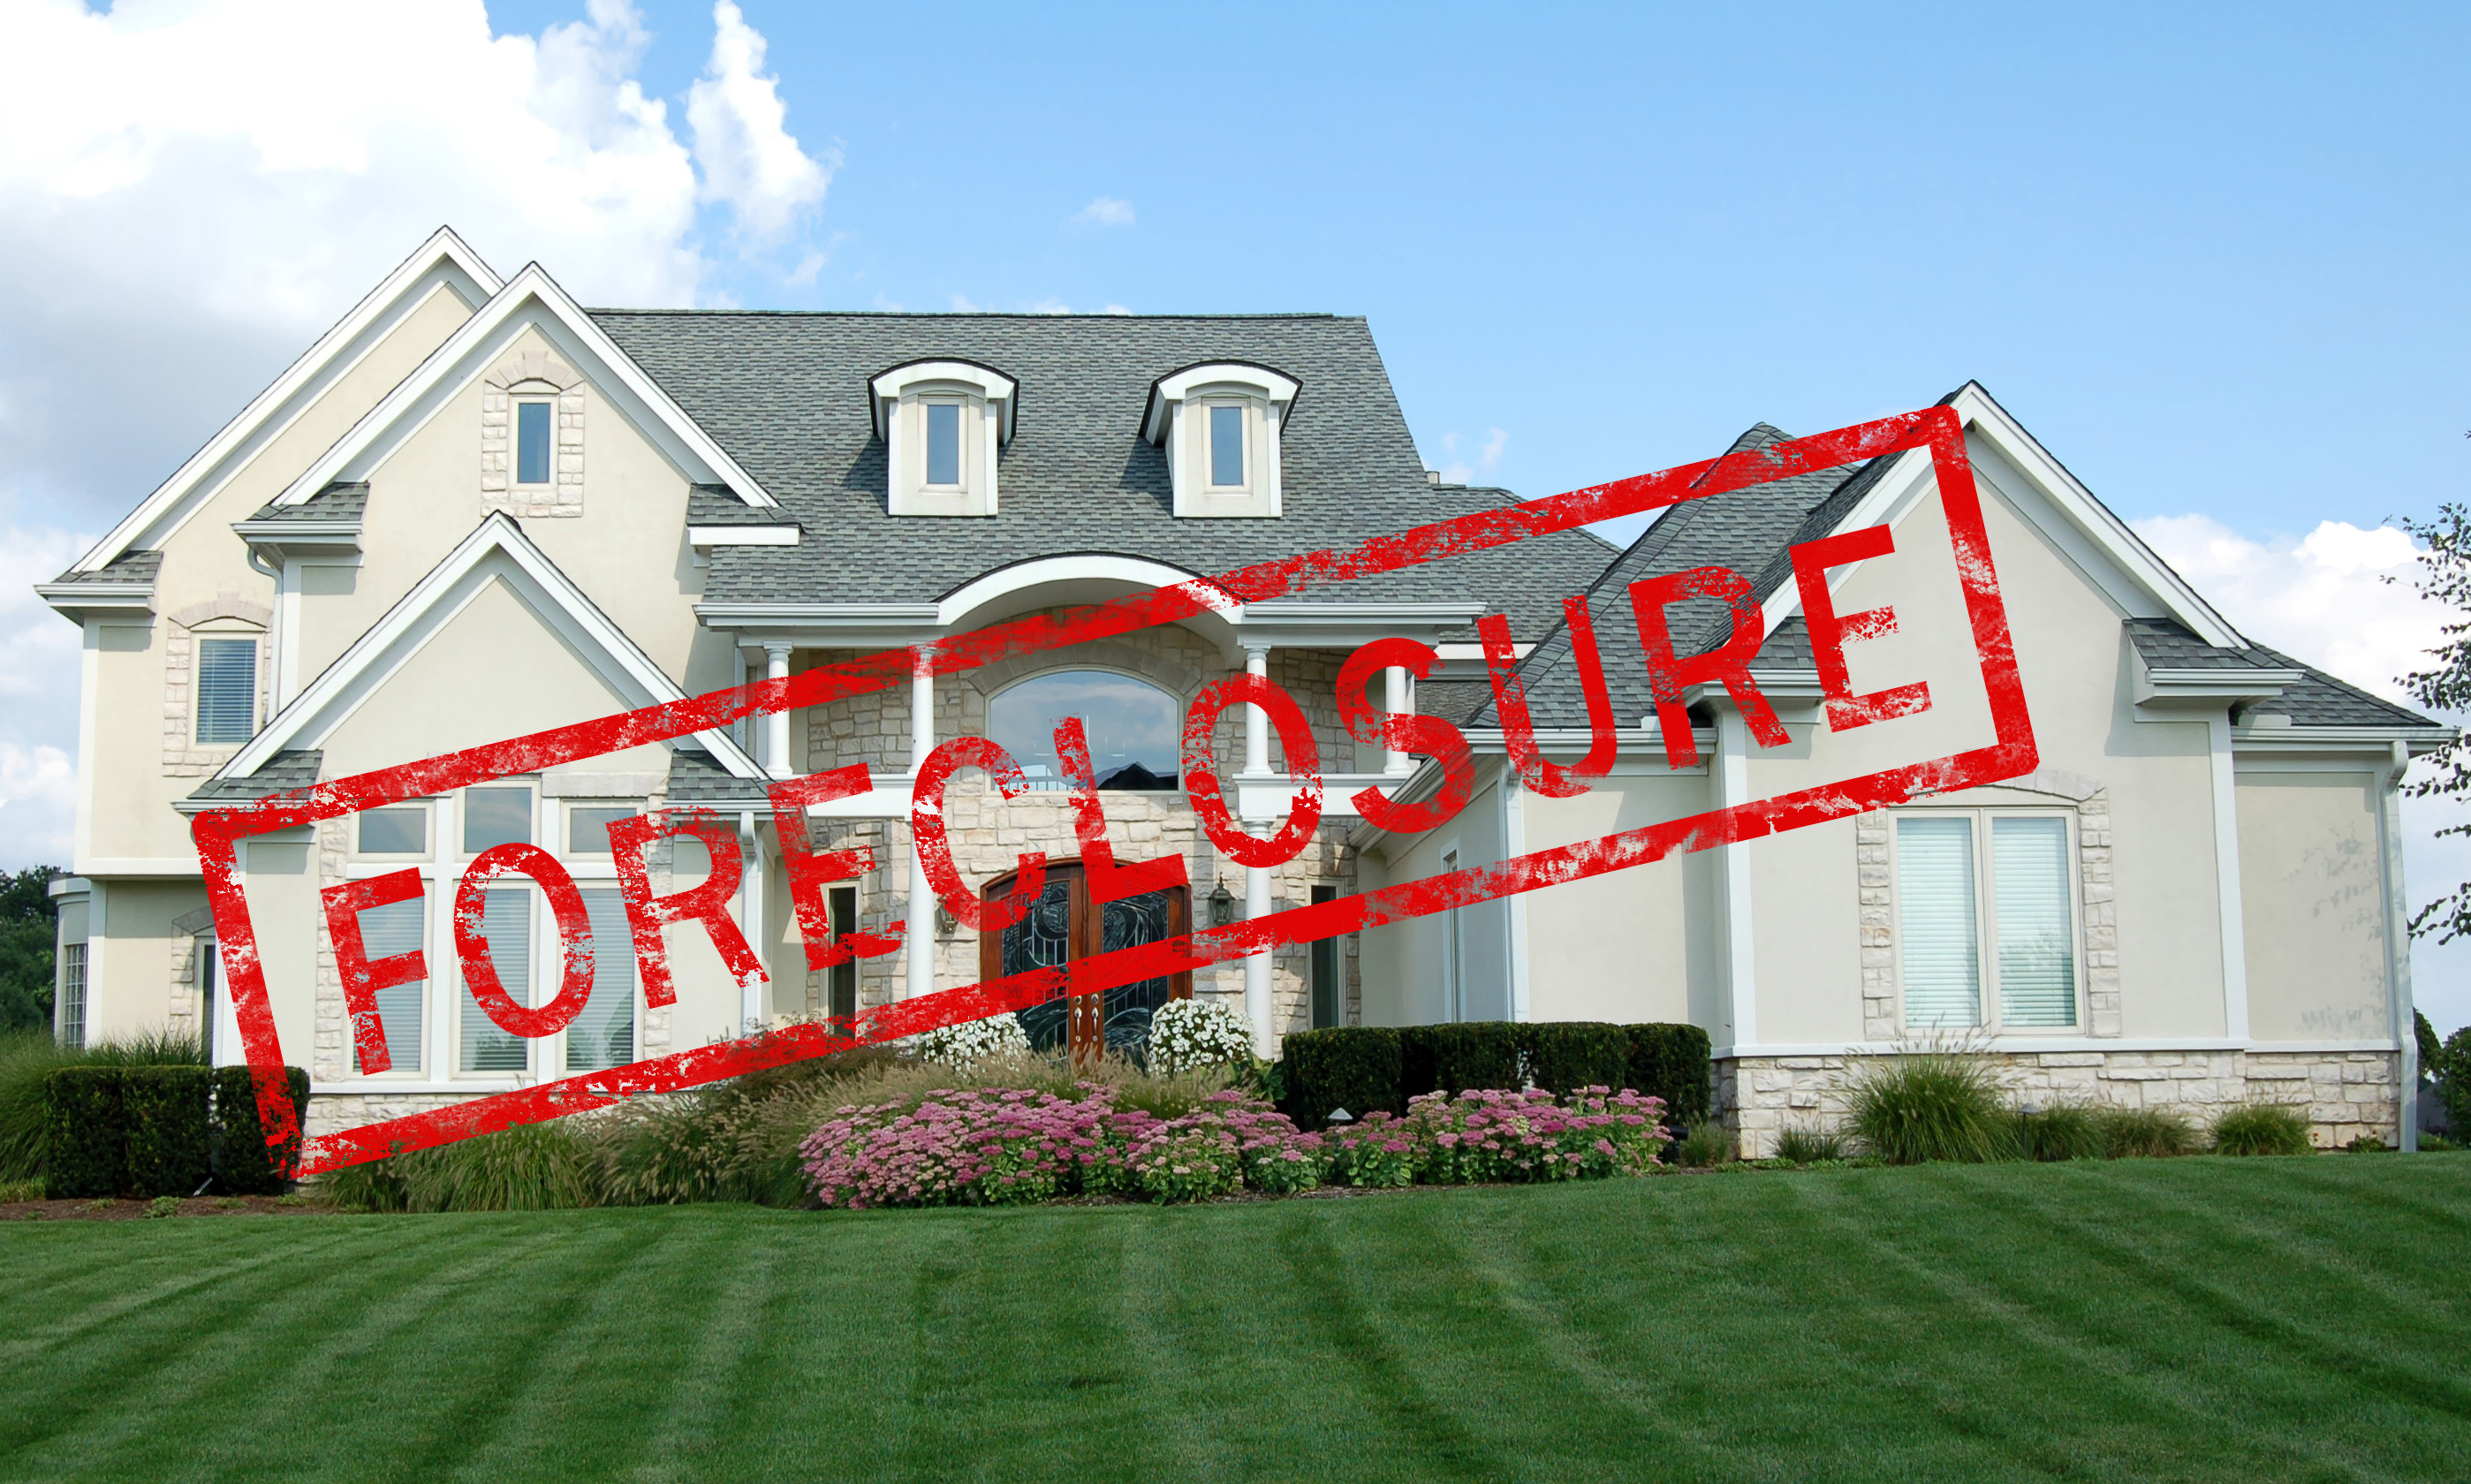 Call The August Group Inc. when you need appraisals pertaining to Saint Louis foreclosures